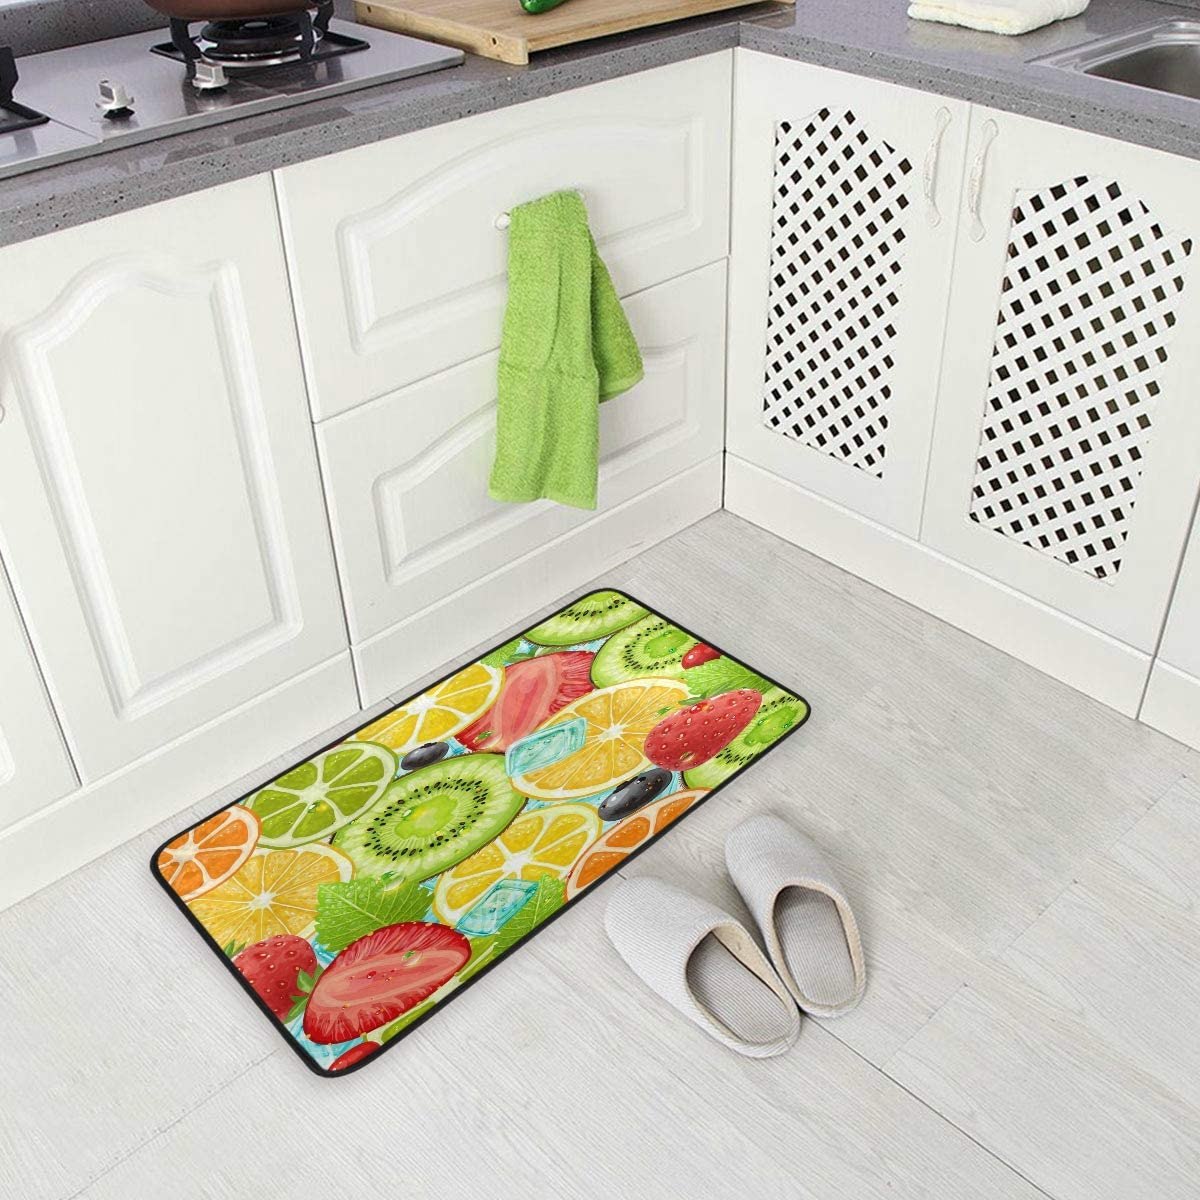 ALAZA Summer Holiday Fruit Strawberry Non Slip Kitchen Floor Mat Kitchen Rug for Entryway Hallway Bathroom Living Room Bedroom 39 x 20 inches(1.7' x 3.3')